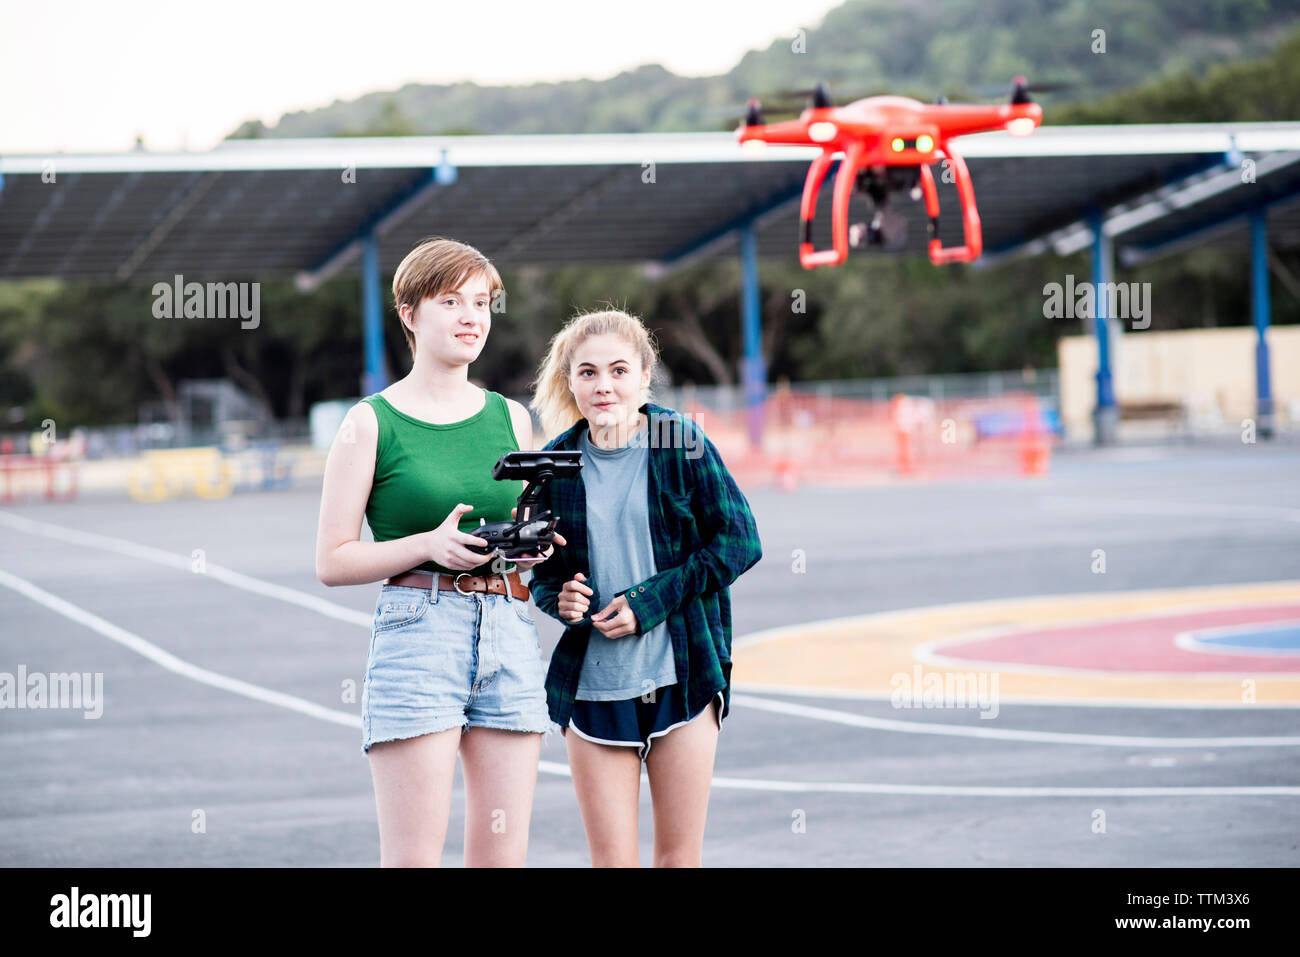 Friends operating quadcopter while standing at park - Stock Image